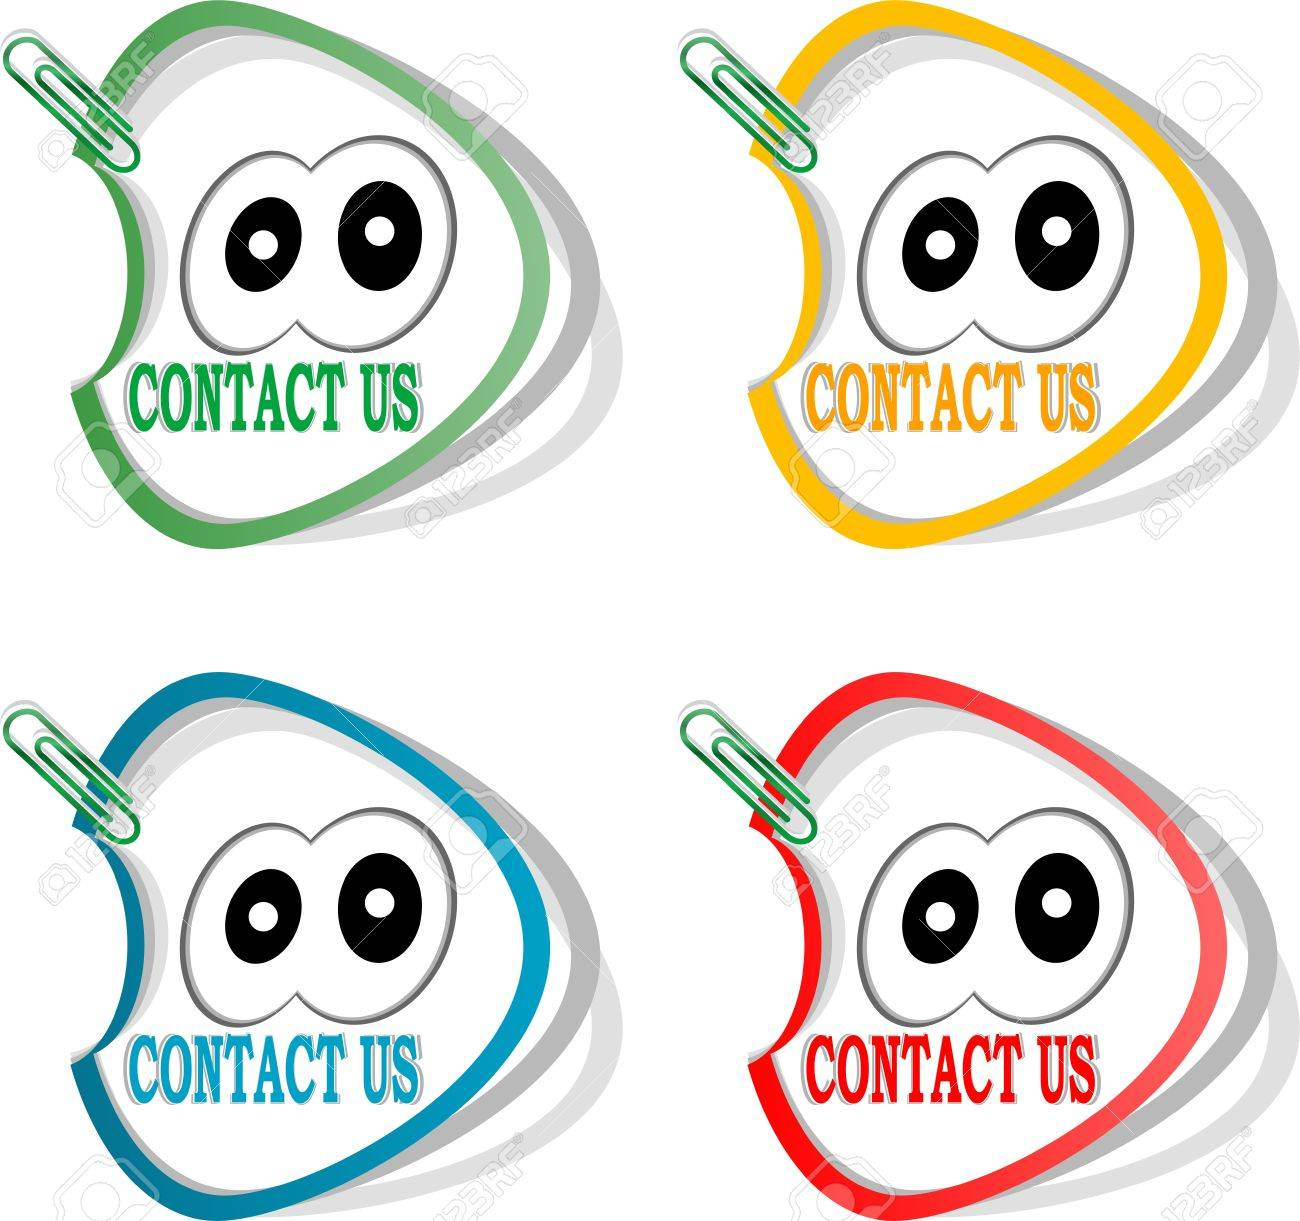 Contact us labels and cute cartoon eyes stickers for the web page stock photo